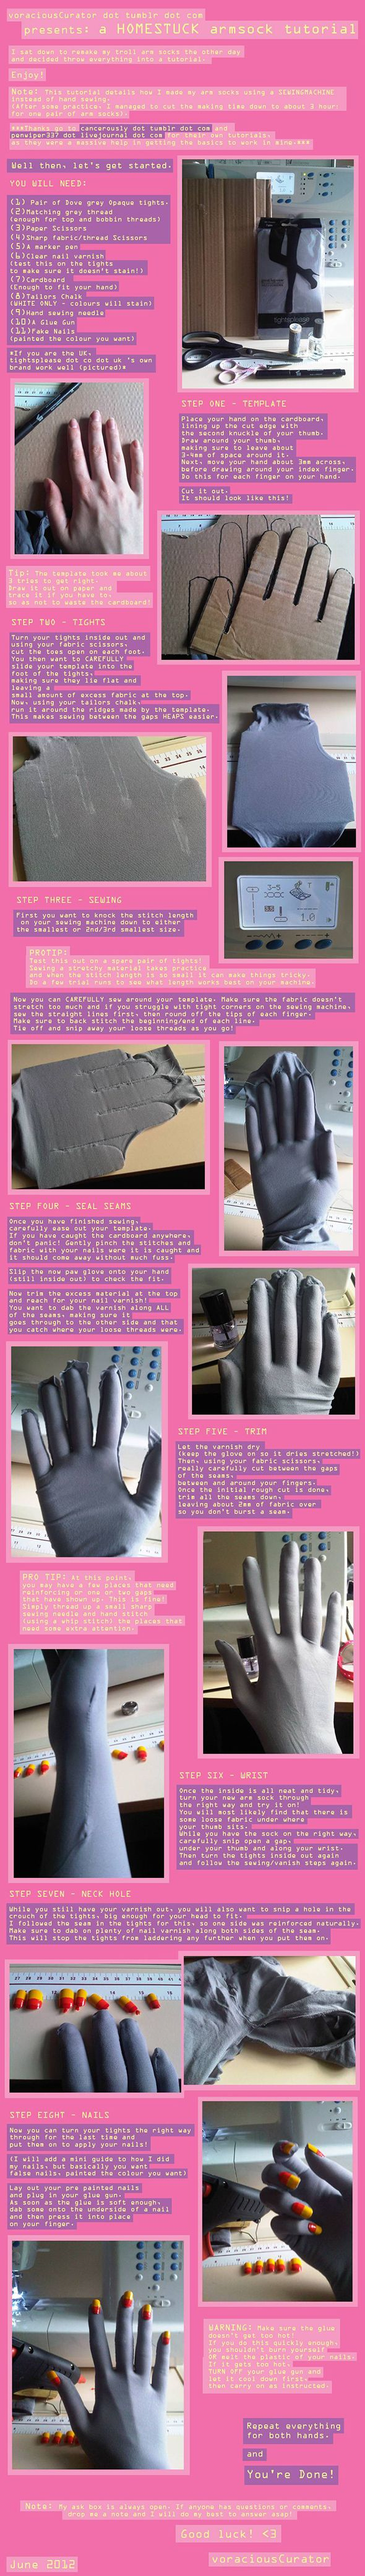 This made me realize that the thing that makes hand coverings look more unnatural is the lack of nails! Duh! Can't believe I never realized that.